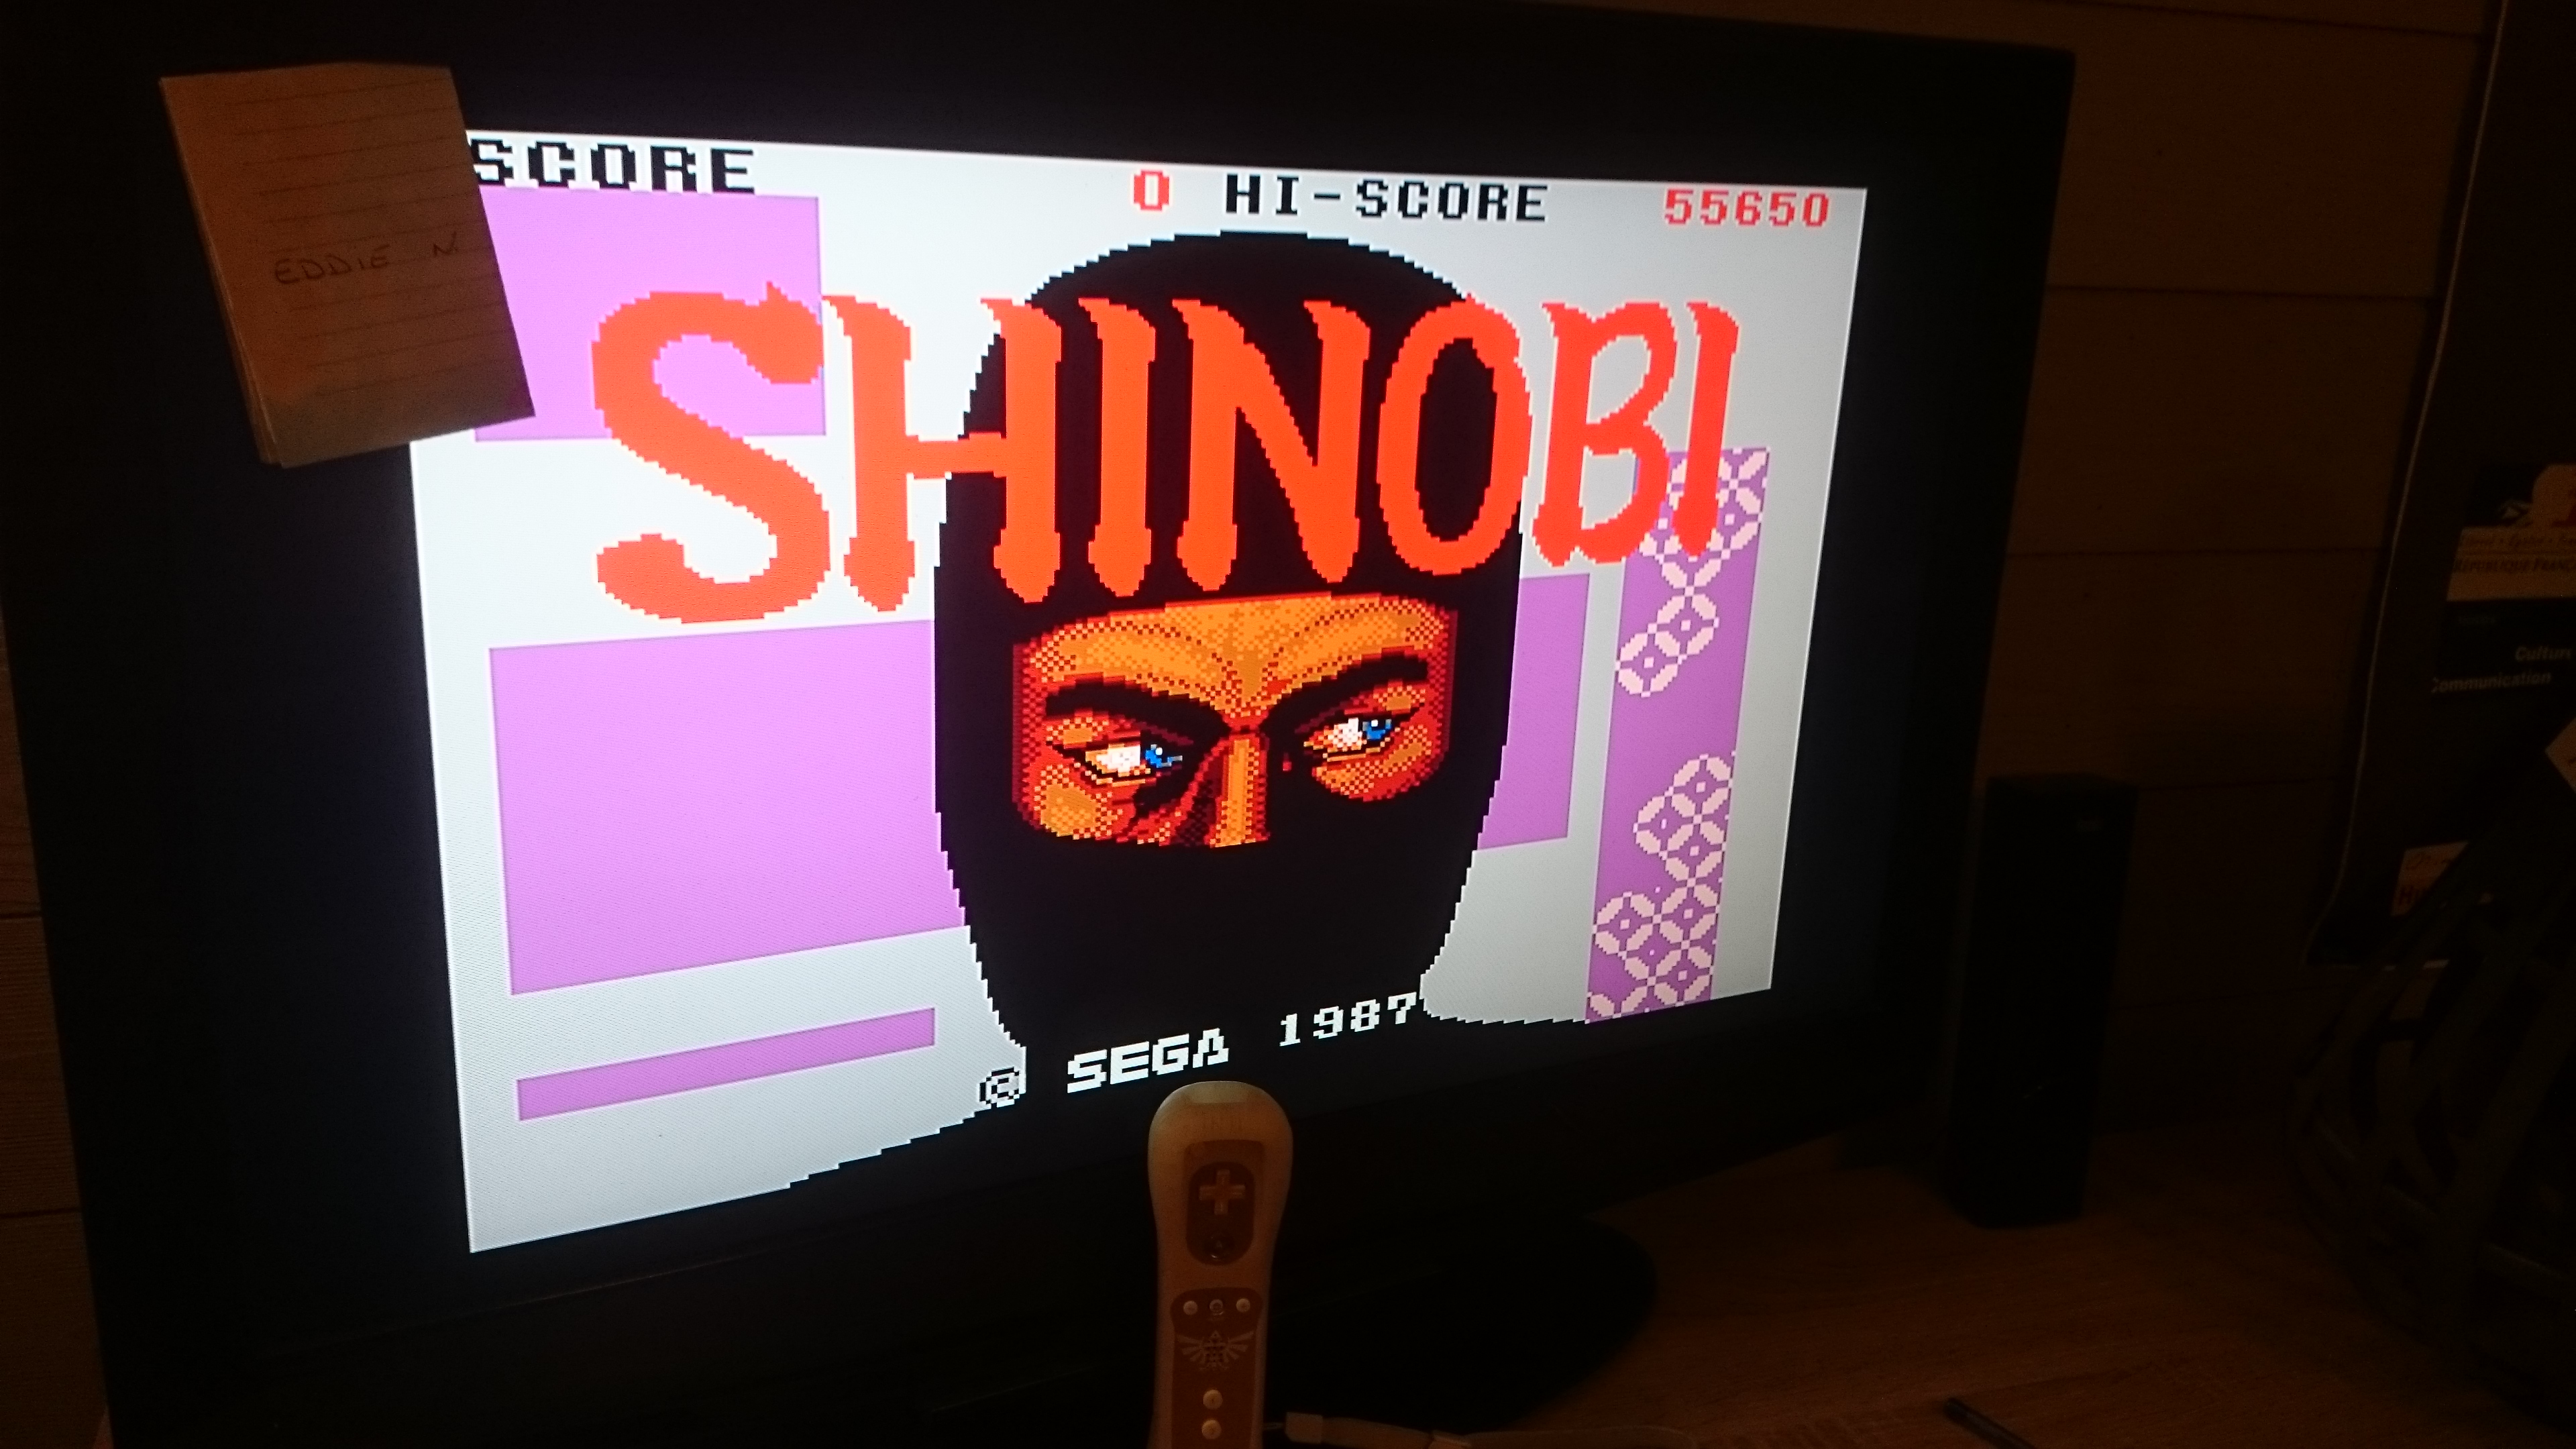 Shinobi 55,650 points